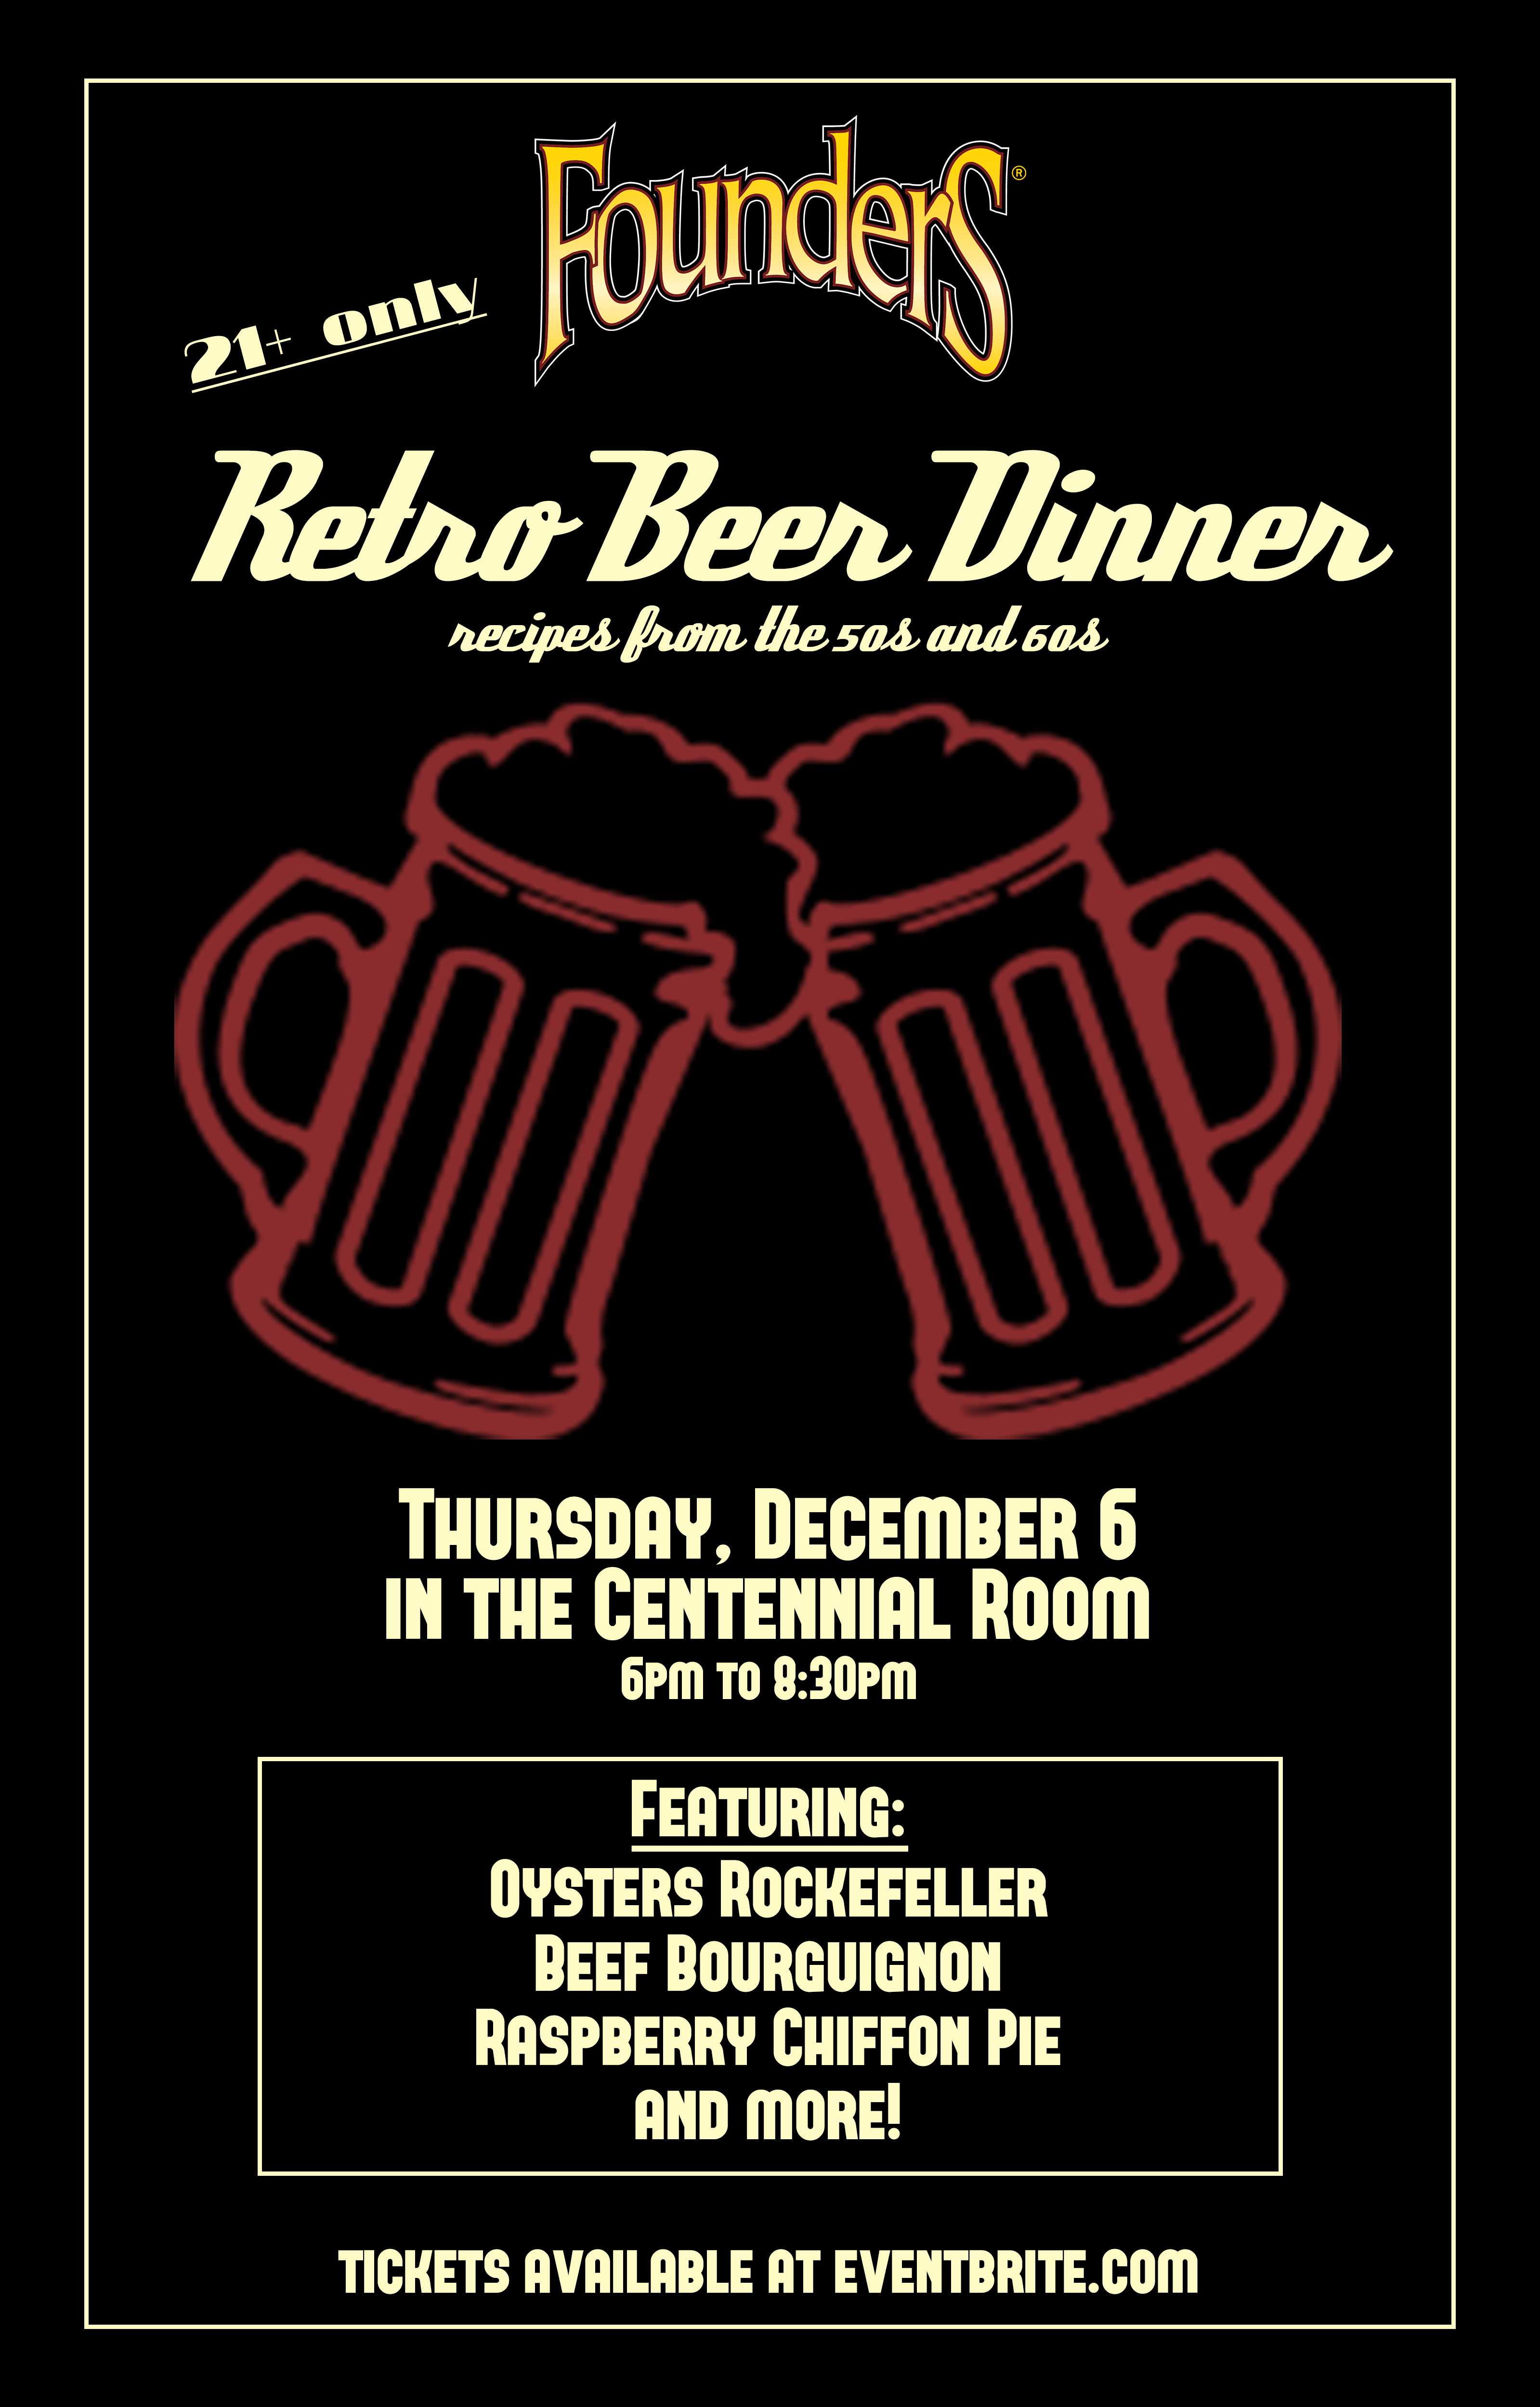 Founders Retro Beer Dinner event poster